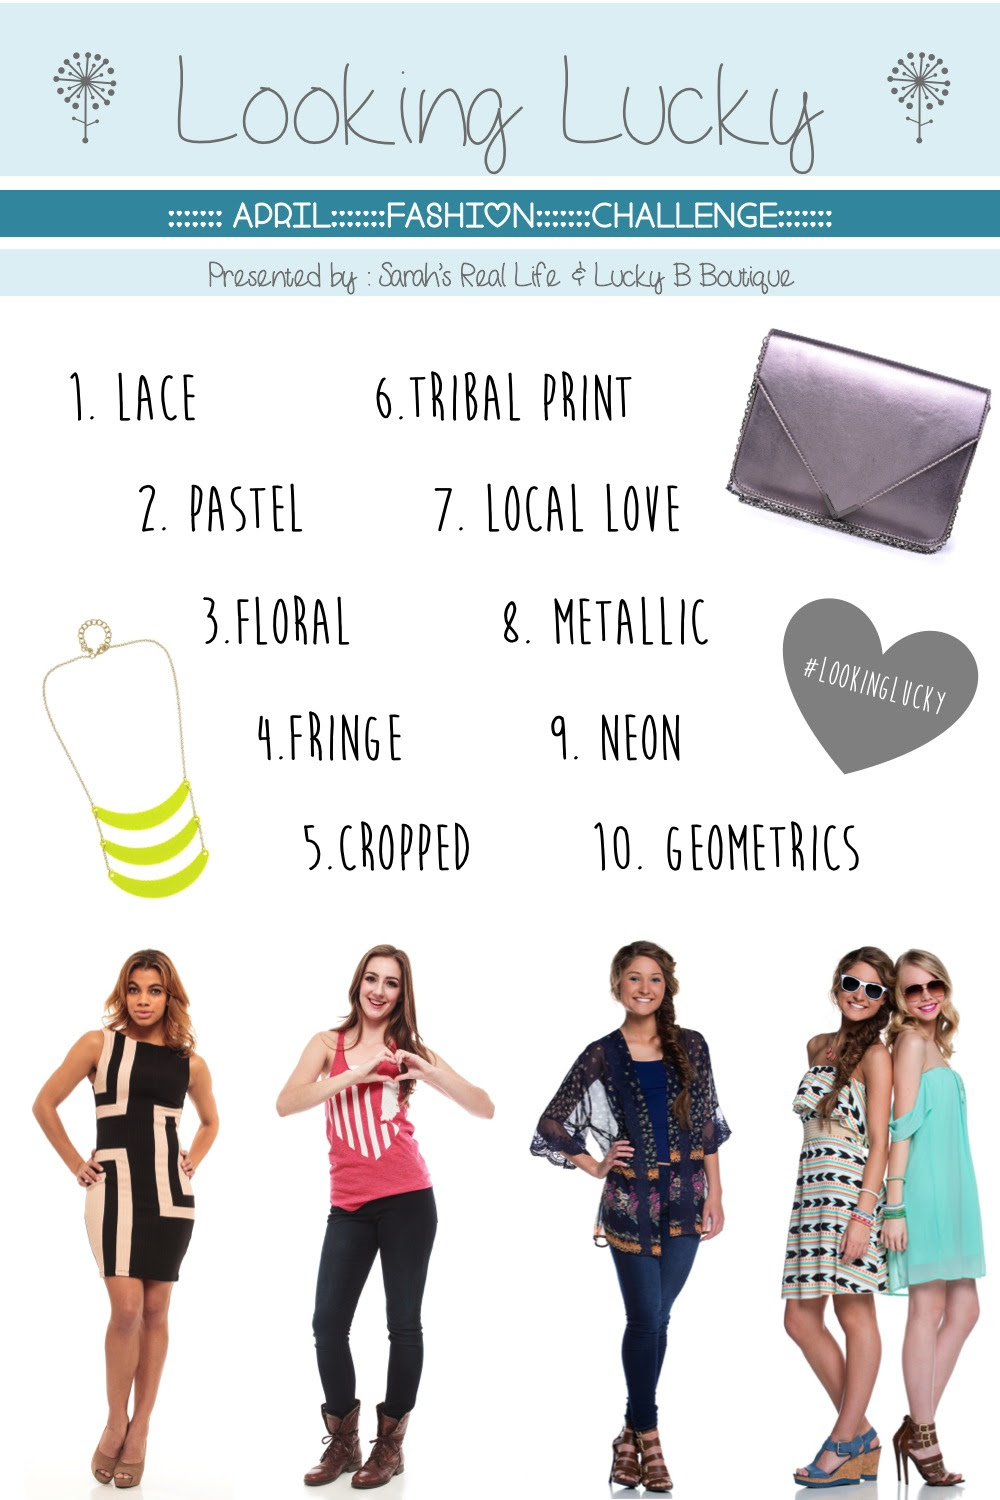 http://sarahsreallife.wordpress.com/2014/03/30/announcing-the-april-looking-lucky-style-challenge-and-giveaway/